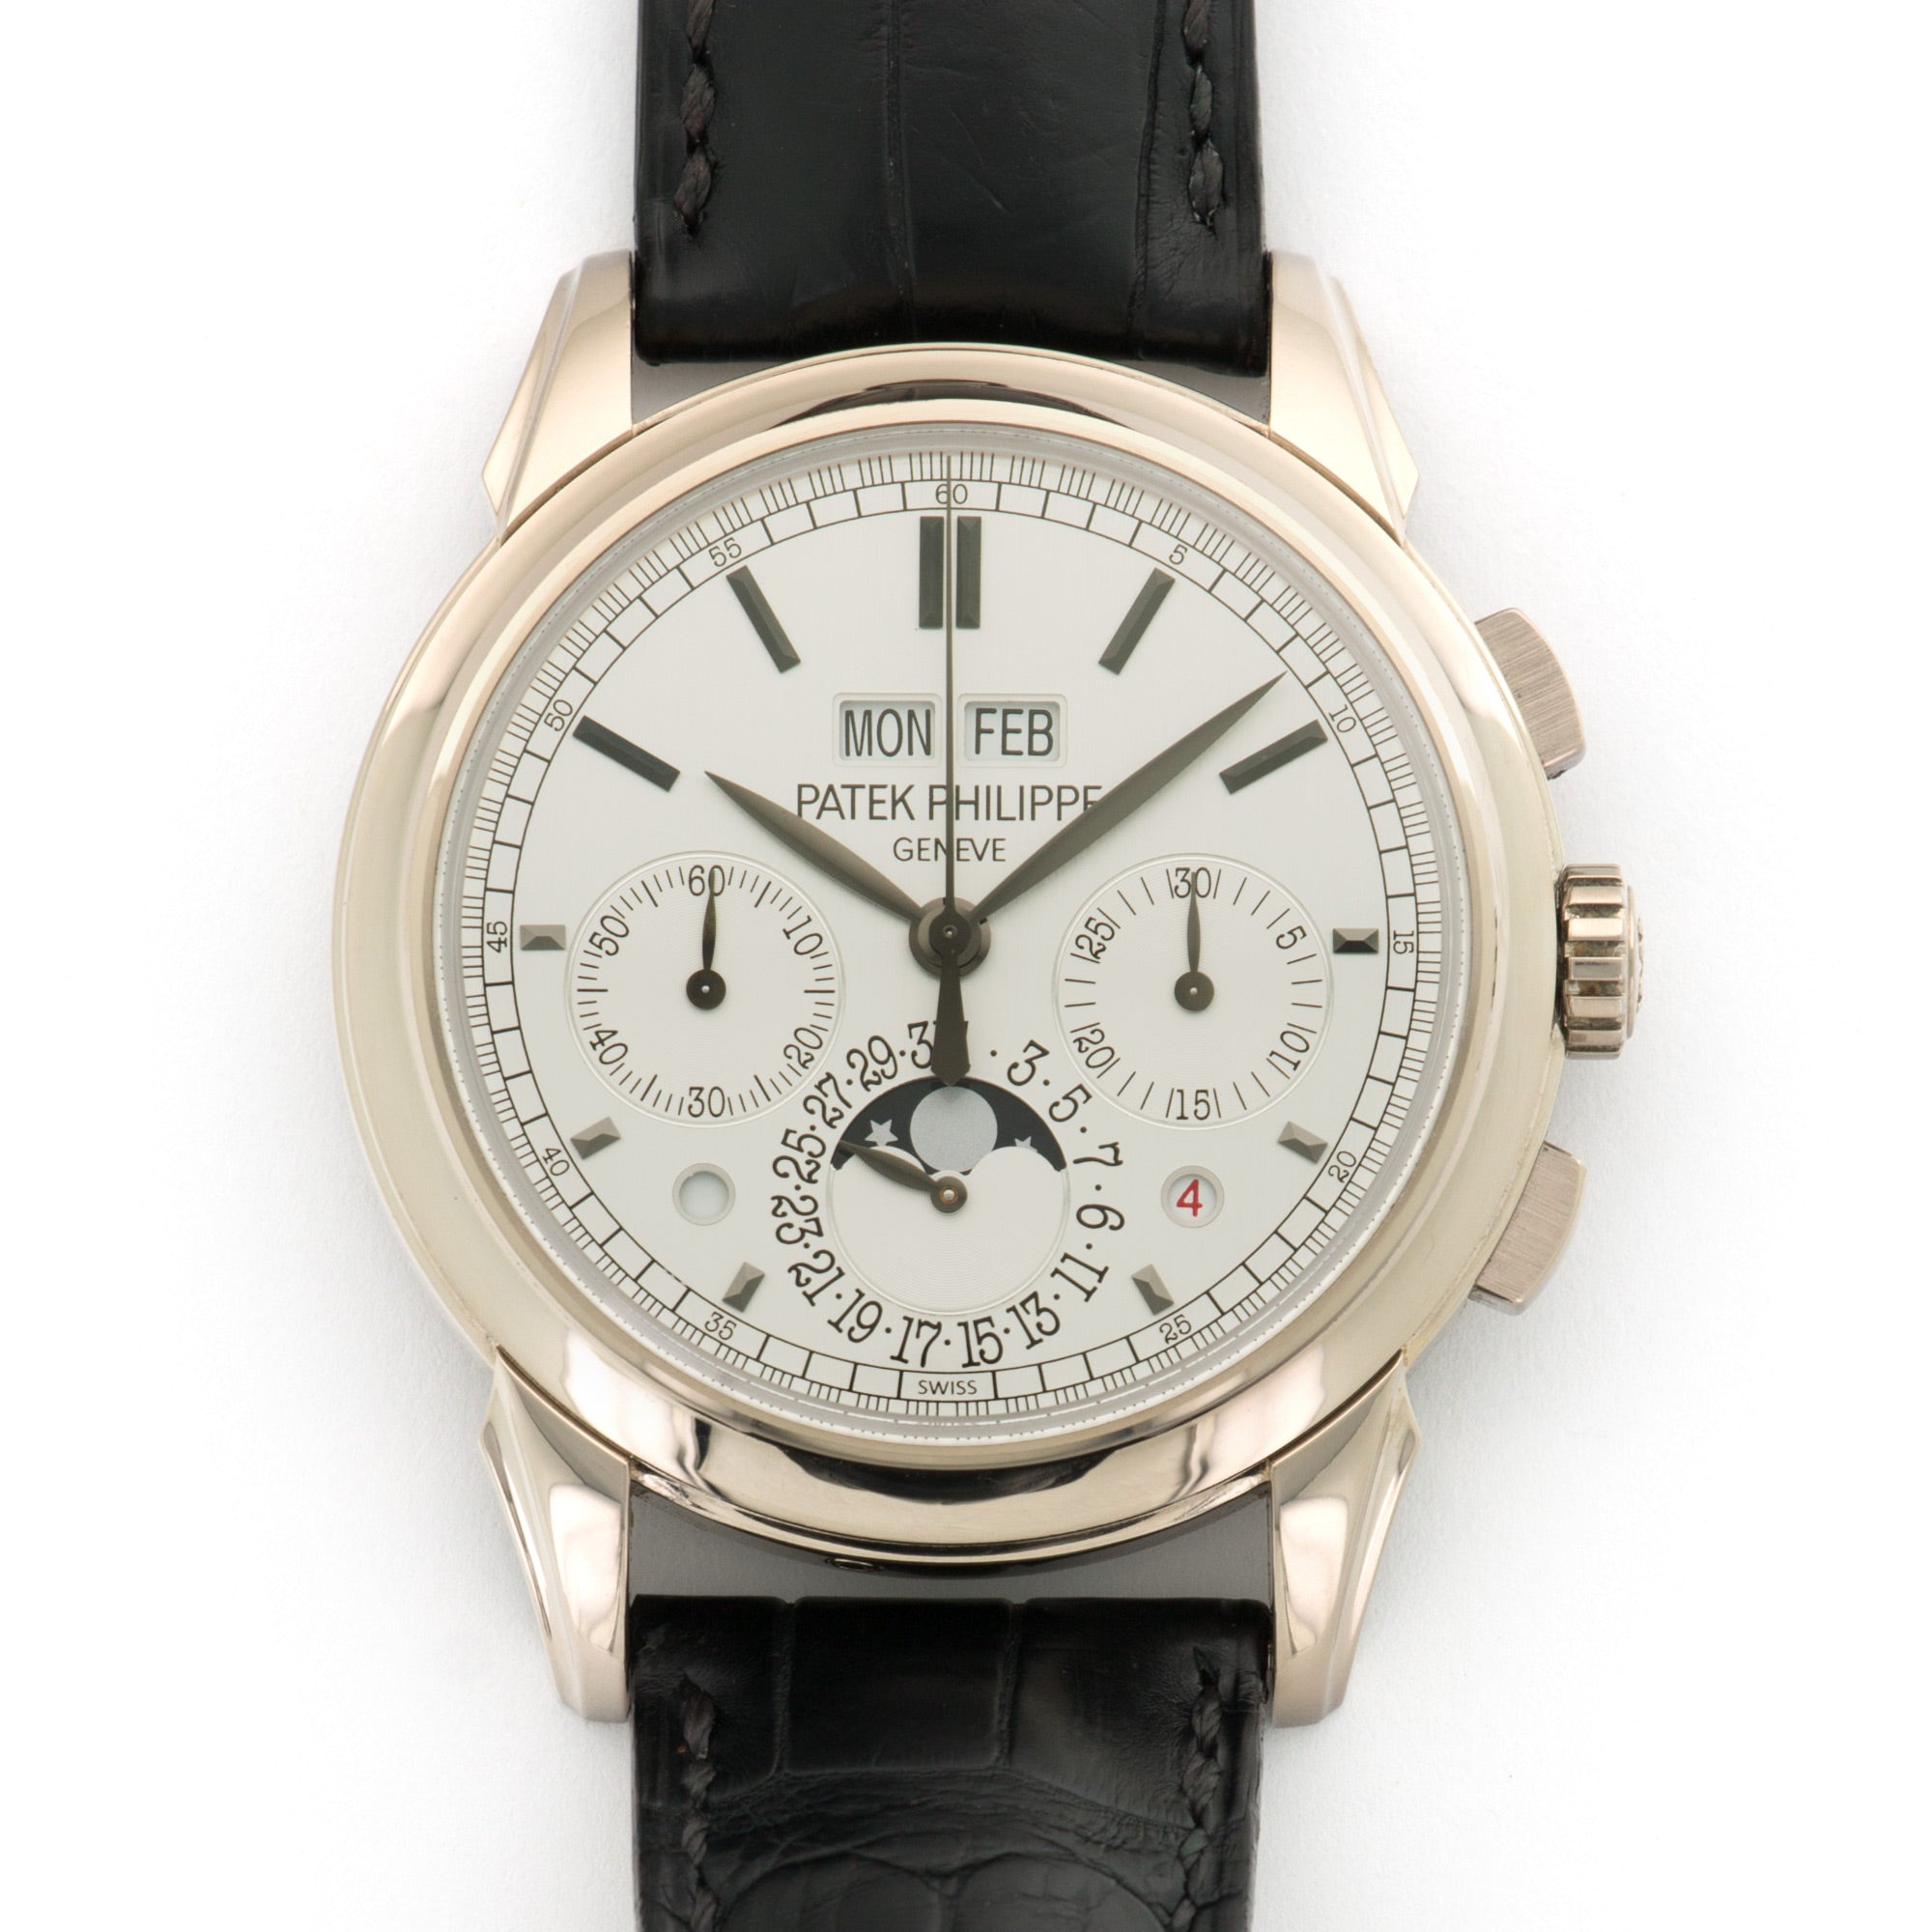 Patek Philippe Perpetual Calendar Chrono 5270G 18k WG  Likely Never Polished, Original Finish Gents 18k WG Silver 41mm Manual 2013 Dark Blue Crocodile Original Box and Certificate